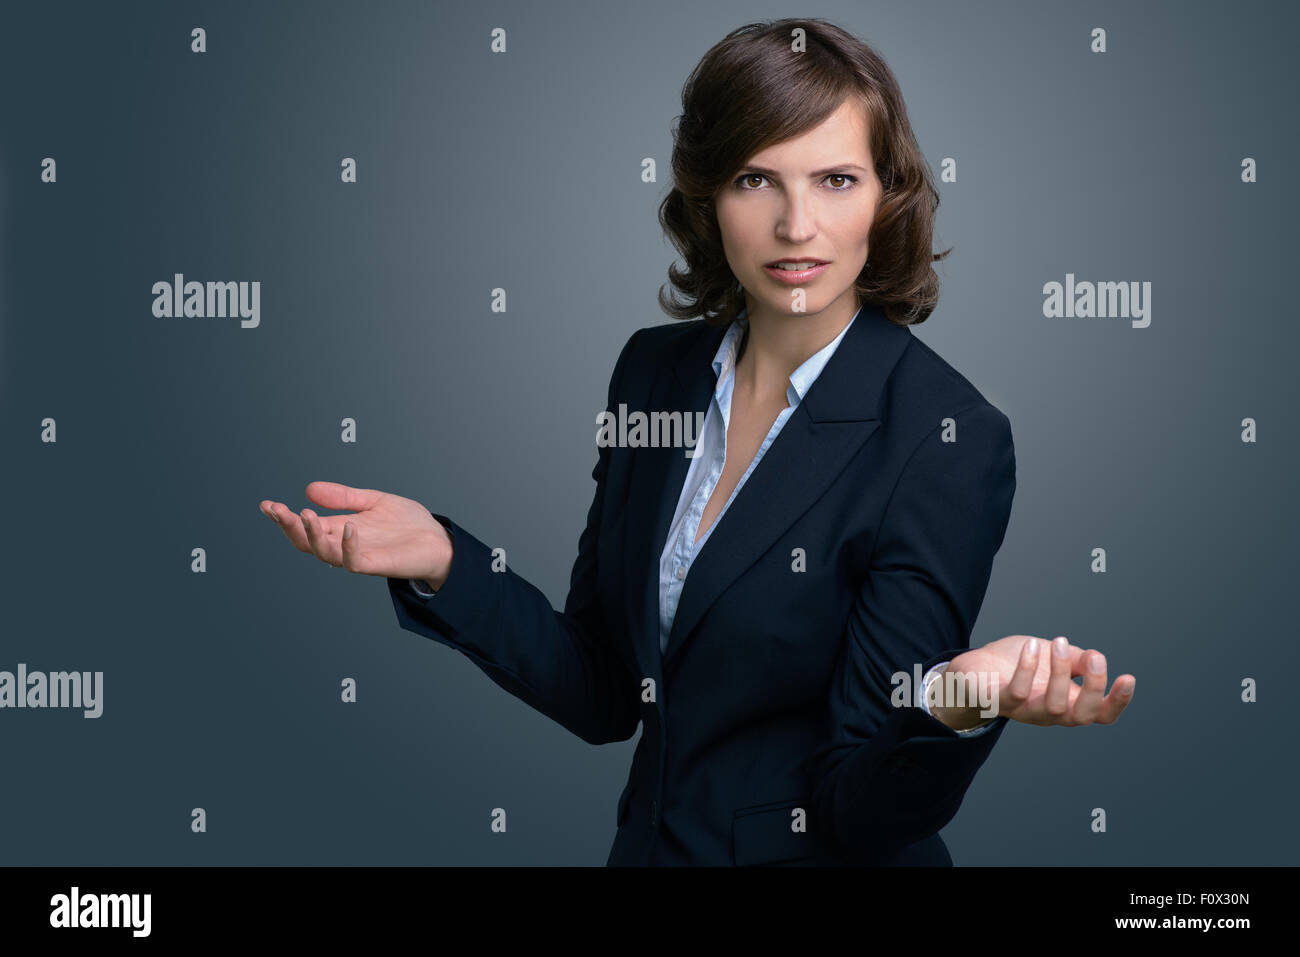 Half Body Shot of a Confused Young Businesswoman with Hands in the Air, Looking into the Distance Against Gray Wall. - Stock Image